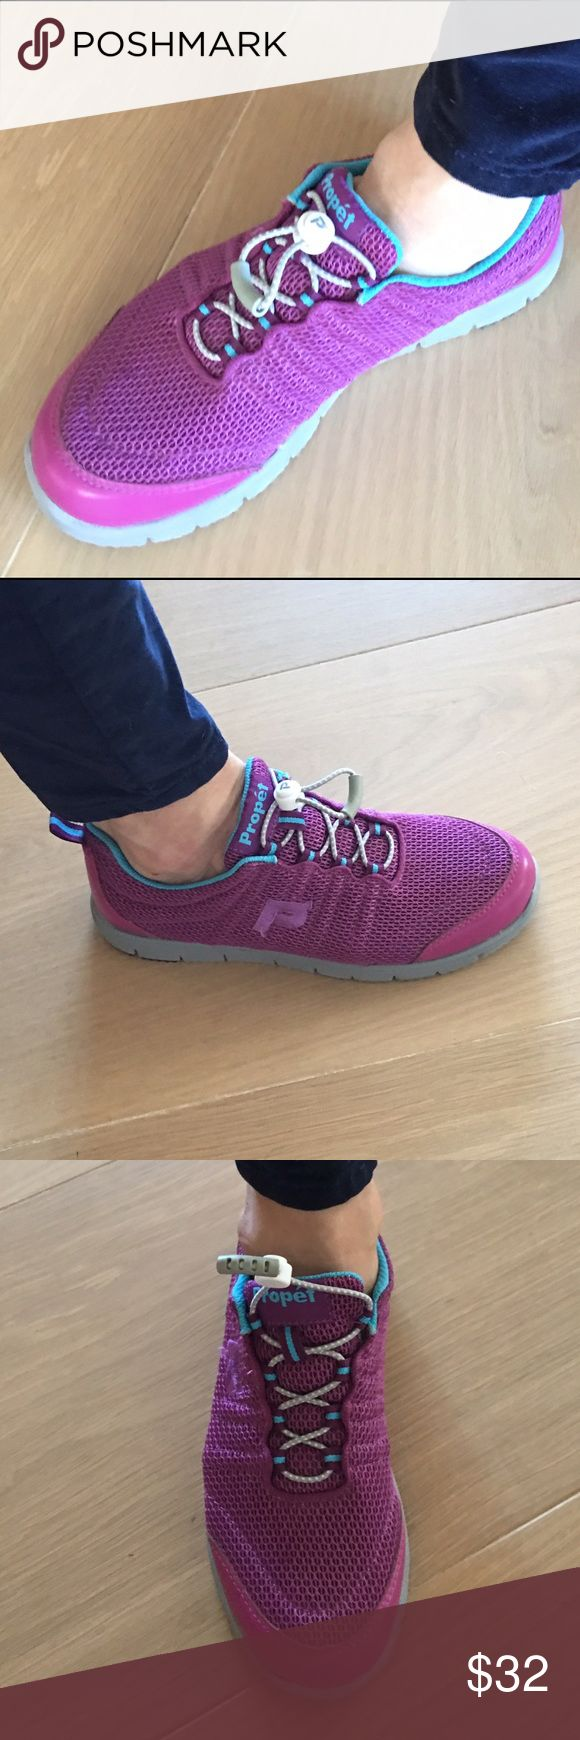 Propet TravelWalker II sneakers worn only once This is a great pair of comfortable walking shoes. Size 8 fun color sort of a combo purple and hot pink with blue trim. Like new they were only worn once! Propet Shoes Athletic Shoes